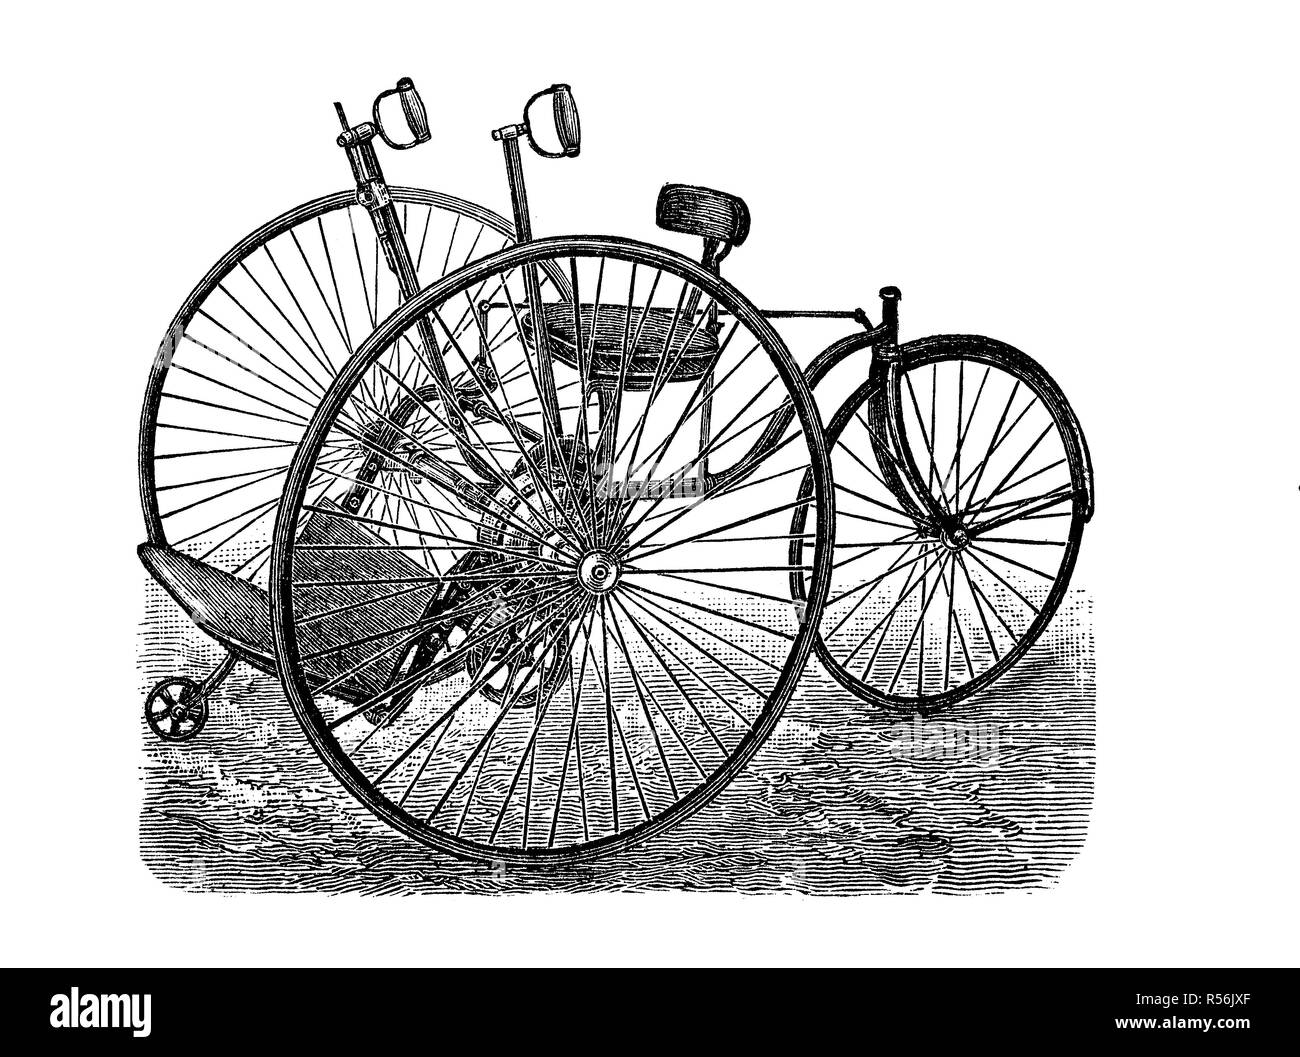 Velocipede, bicycle, 19th century and earlier, Manuped, 1880, woodcut, Germany - Stock Image